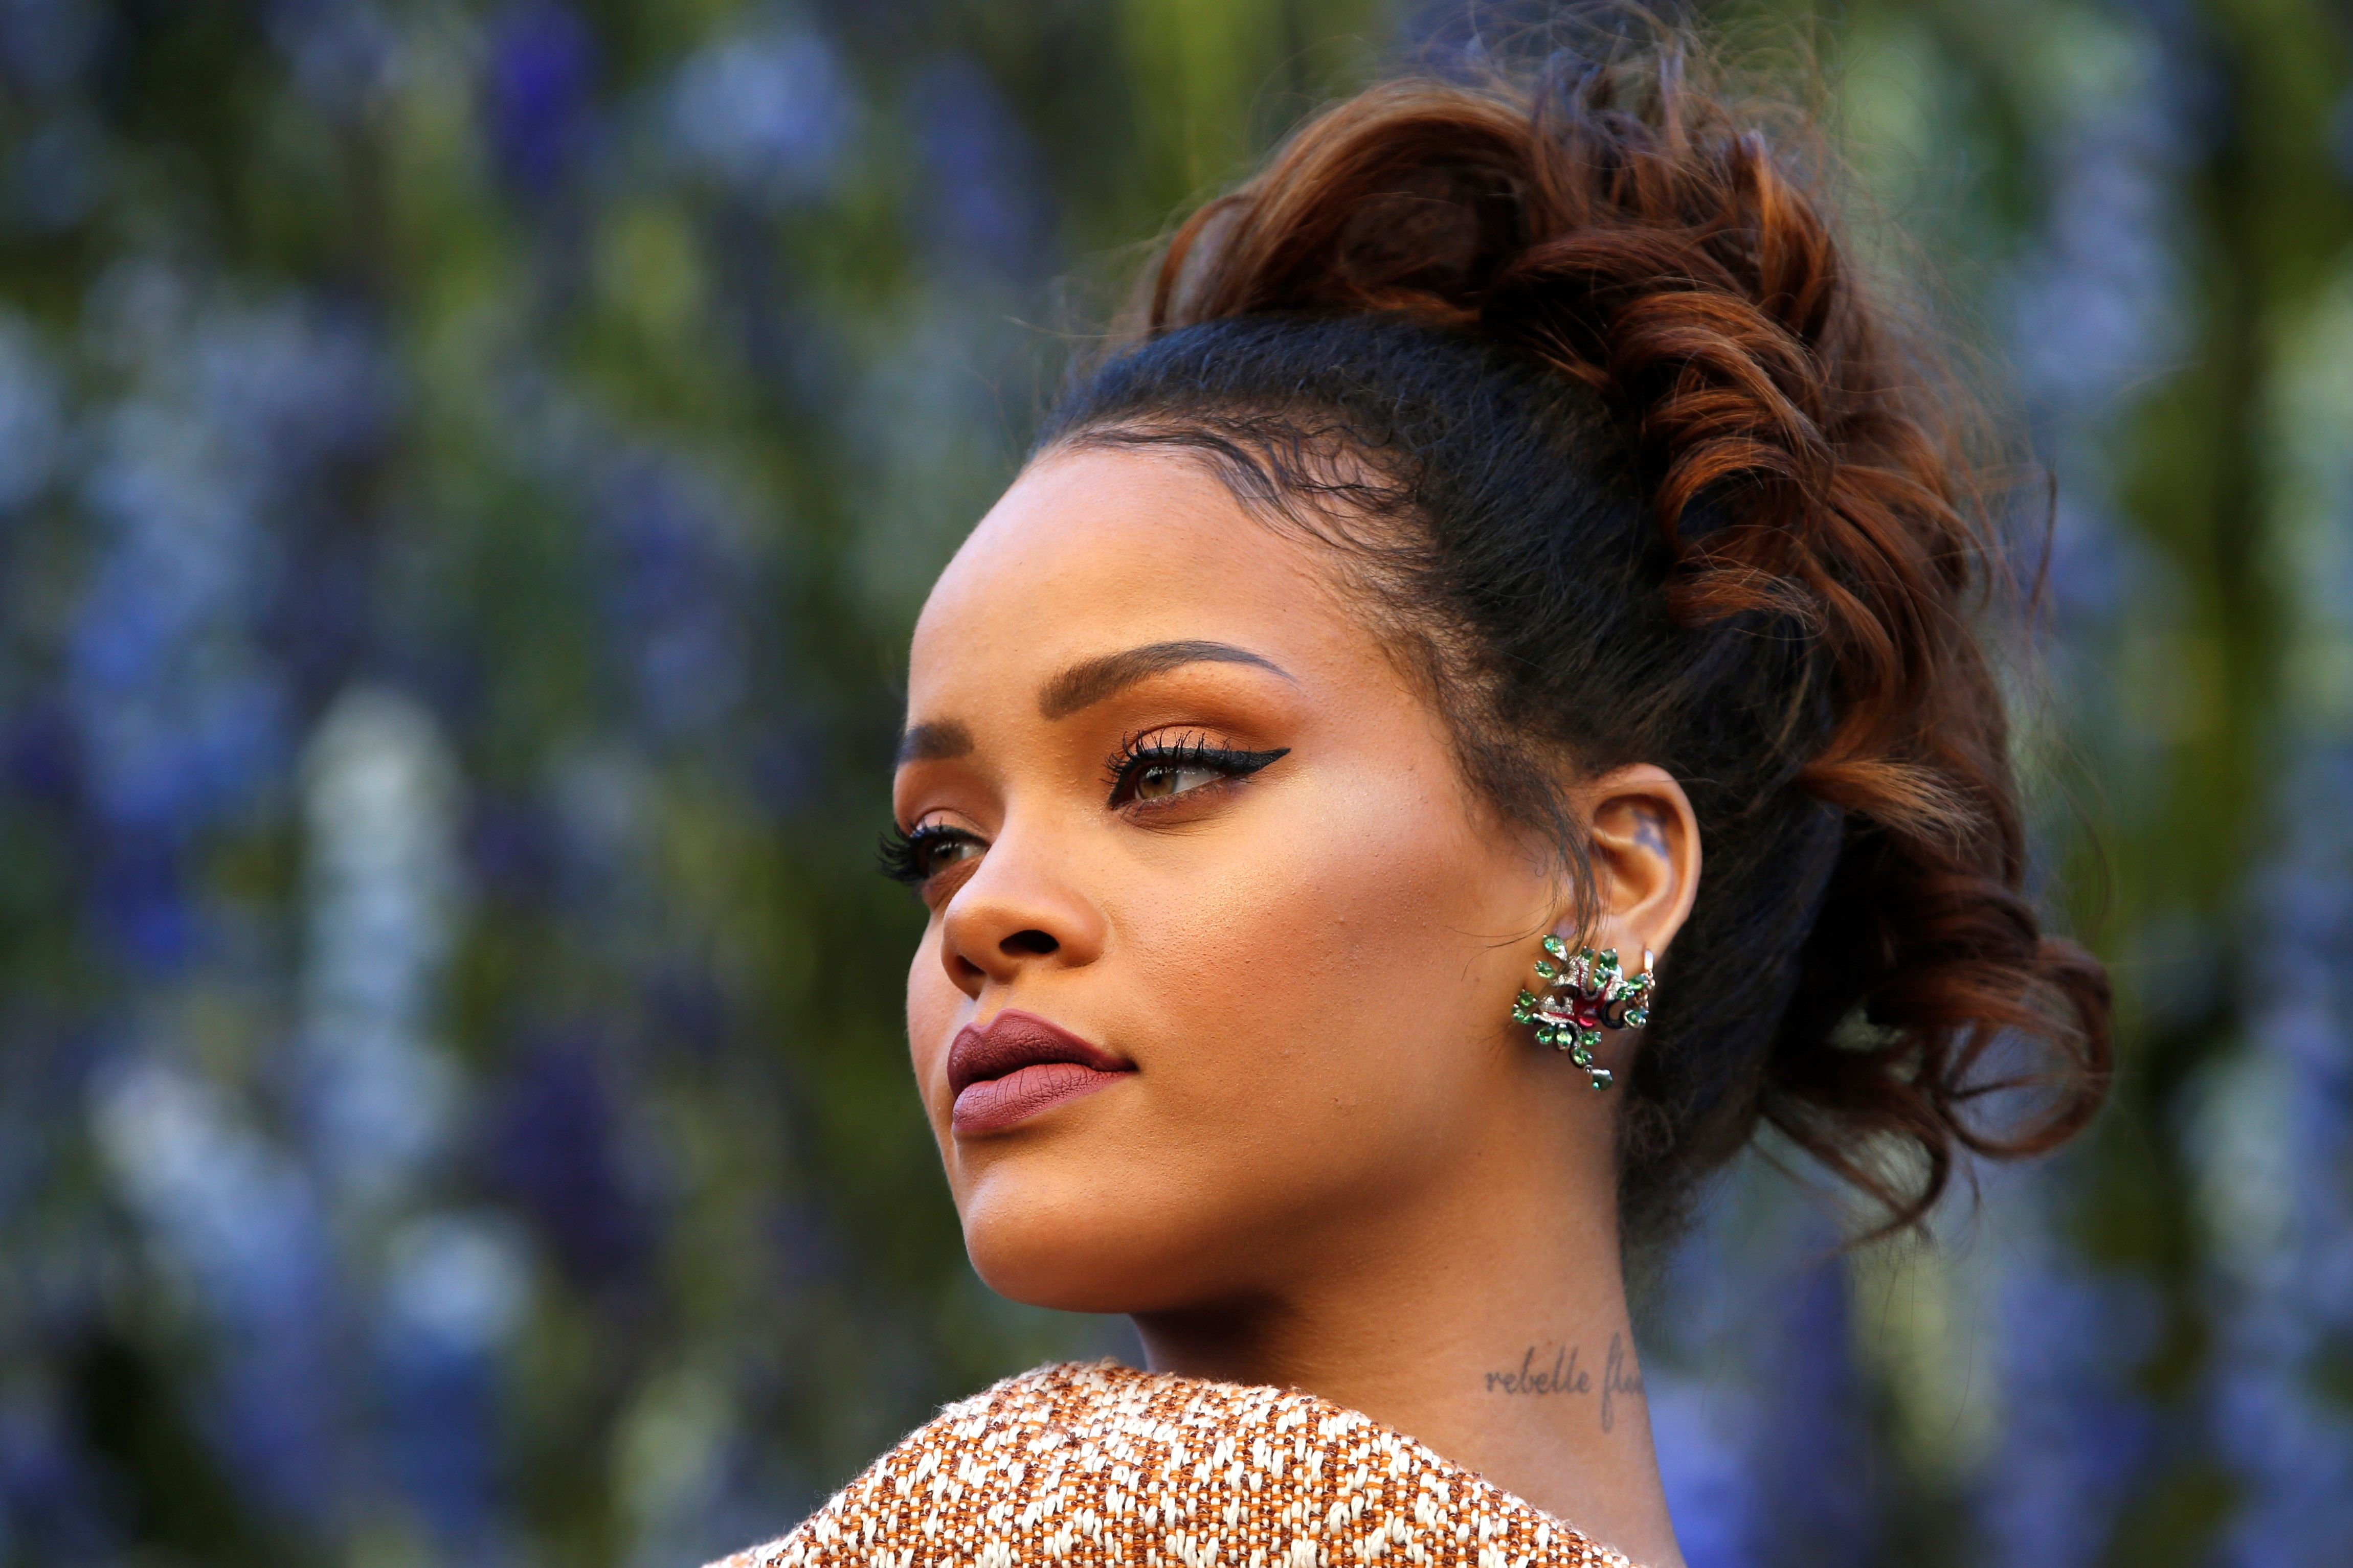 4k ultra hd rihanna wallpaper sharovarka Pinterest Rihanna